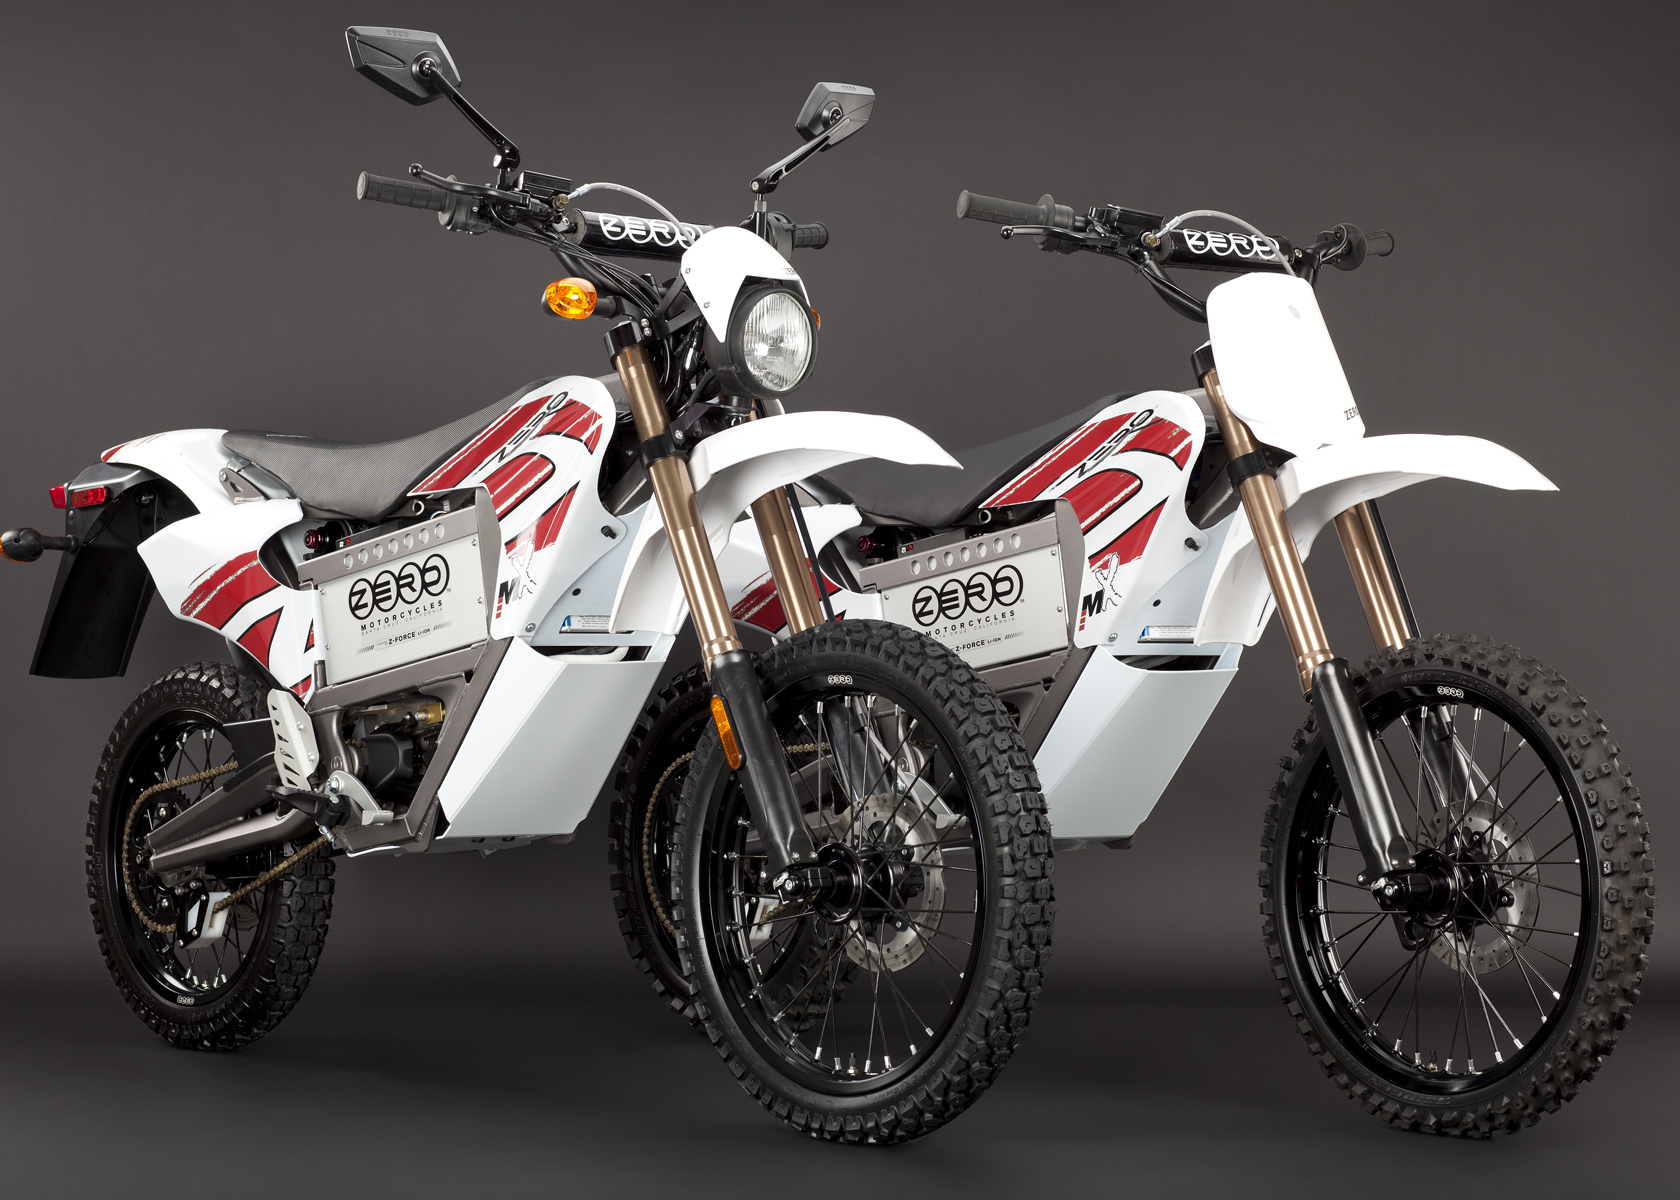 2011 Zero MX Electric Motorcycle: Pair, Dirt and Street Legal Models